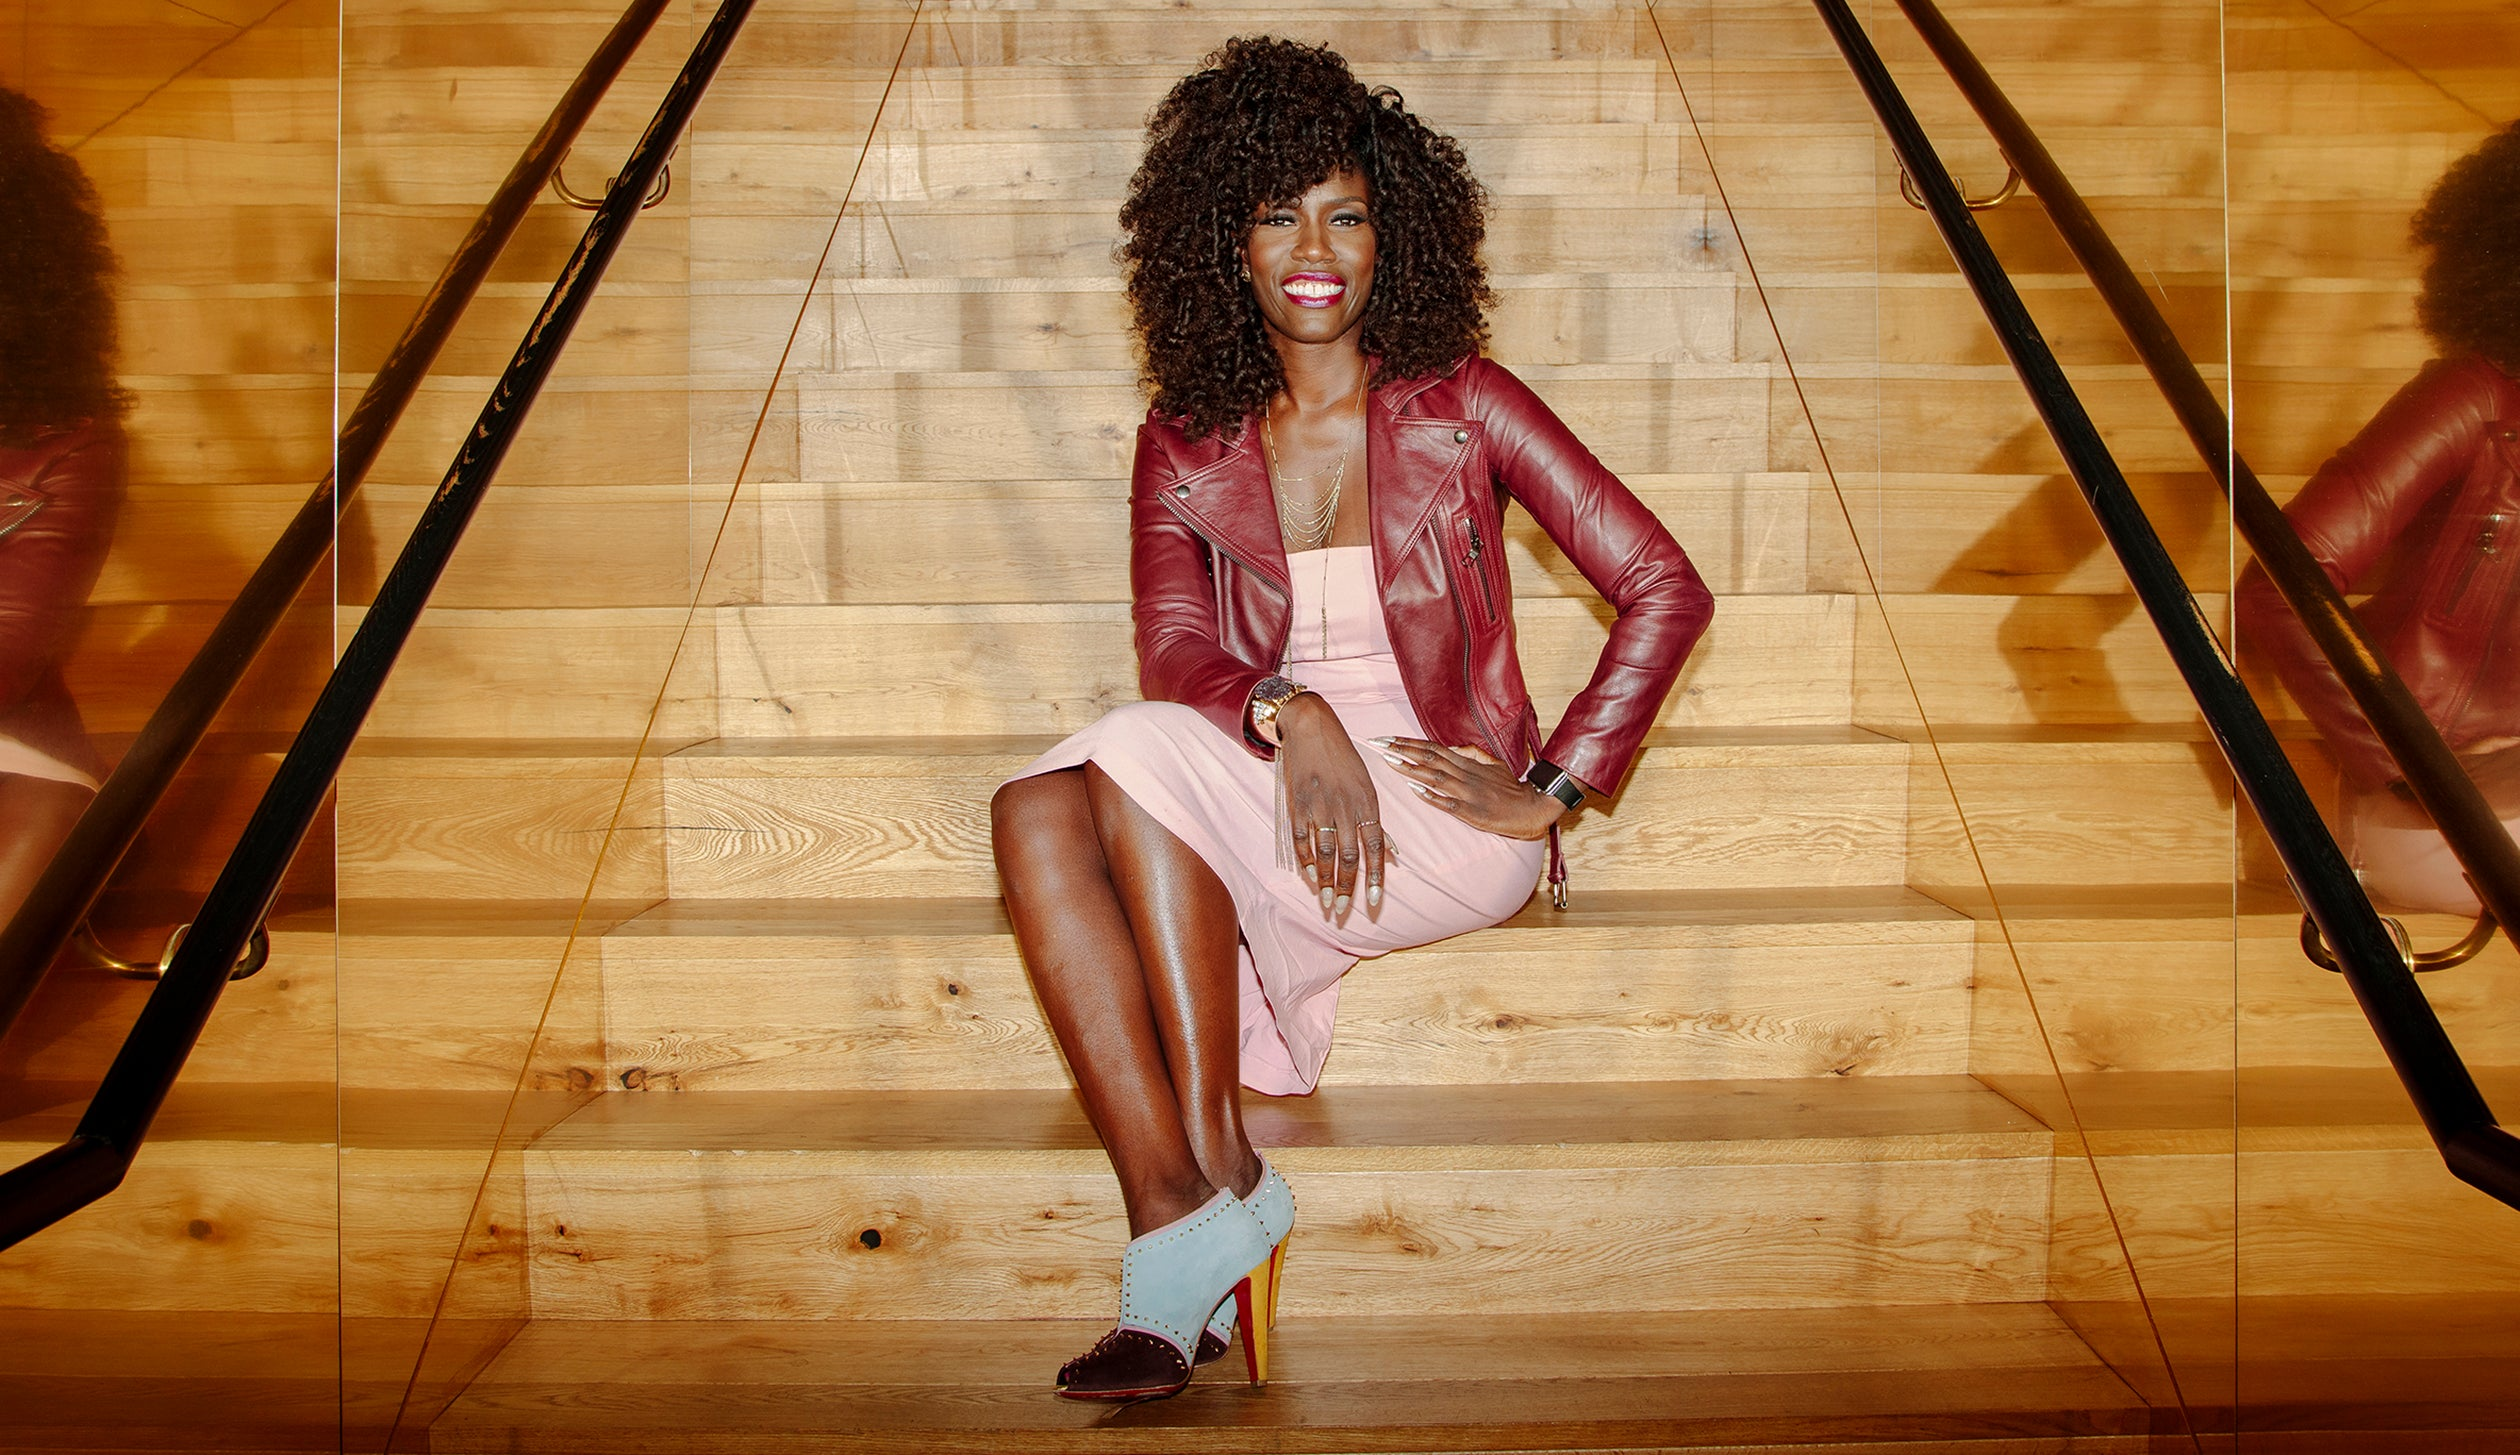 Apple Executive Bozoma Saint John Joins Uber